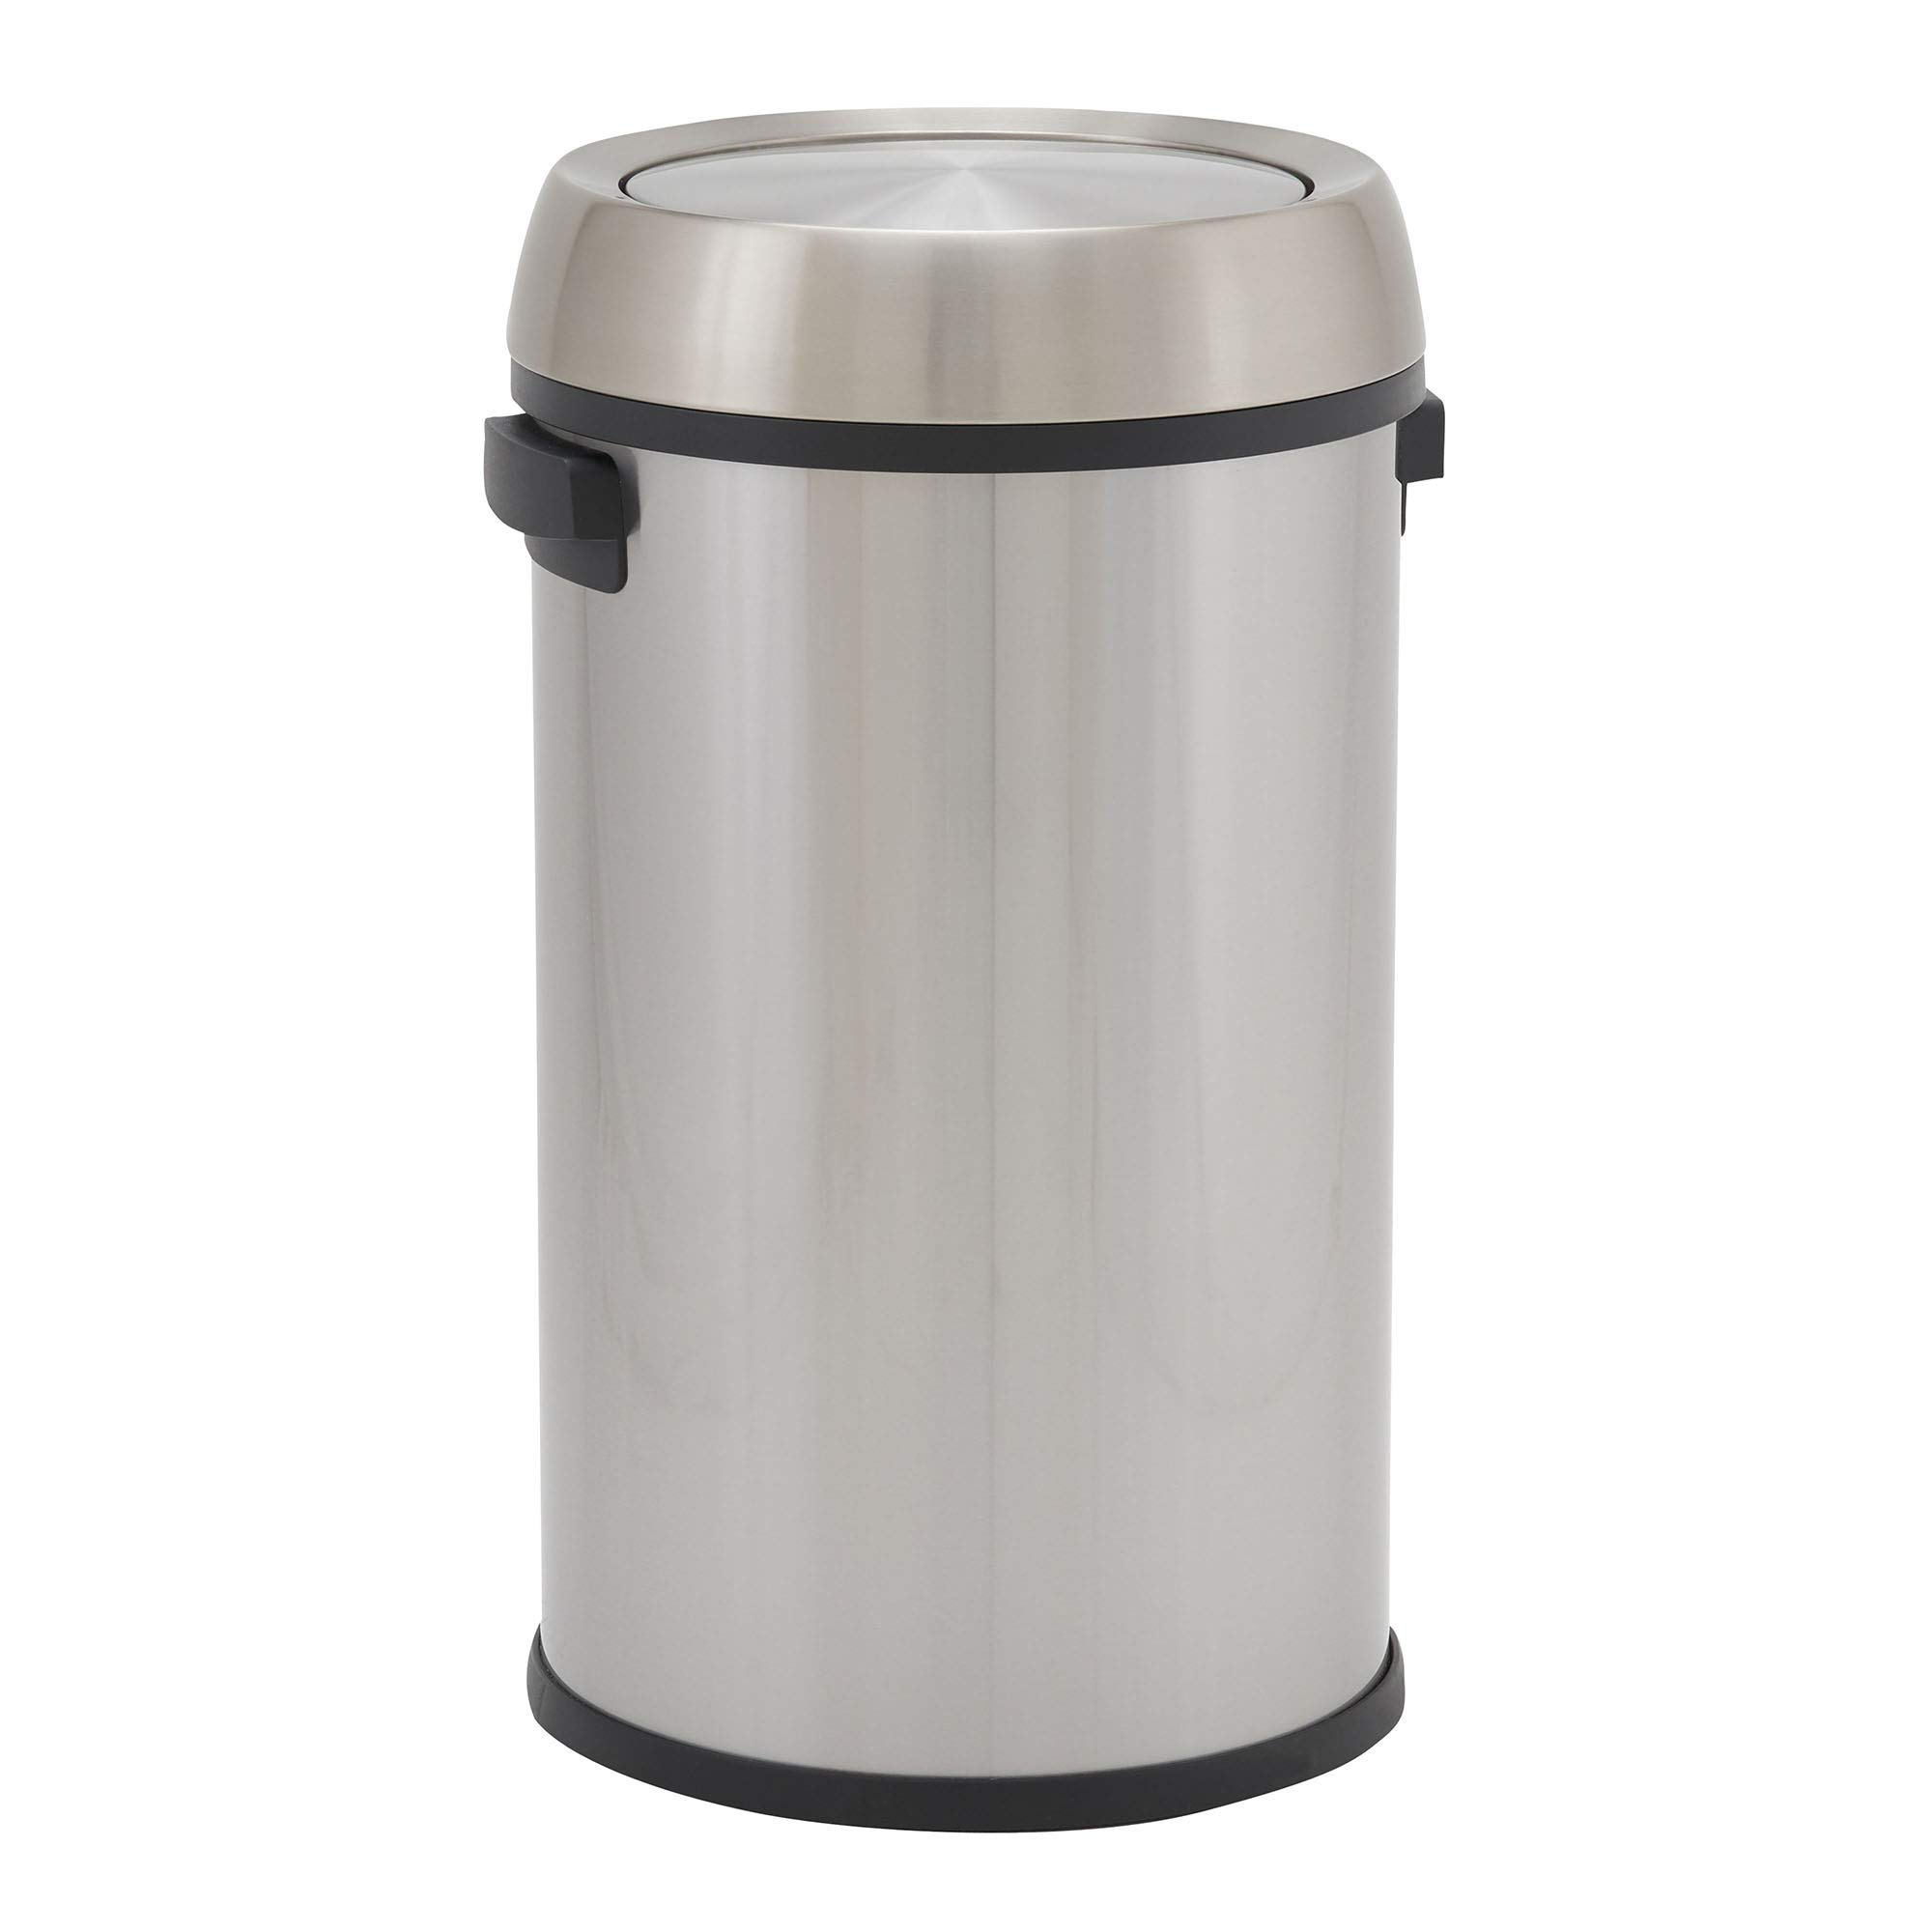 Design Trend Round Stainless Steel Commercial Trash Can with Swing Lid | 65 Liter / 17 Gallon, Silver by Design Trend